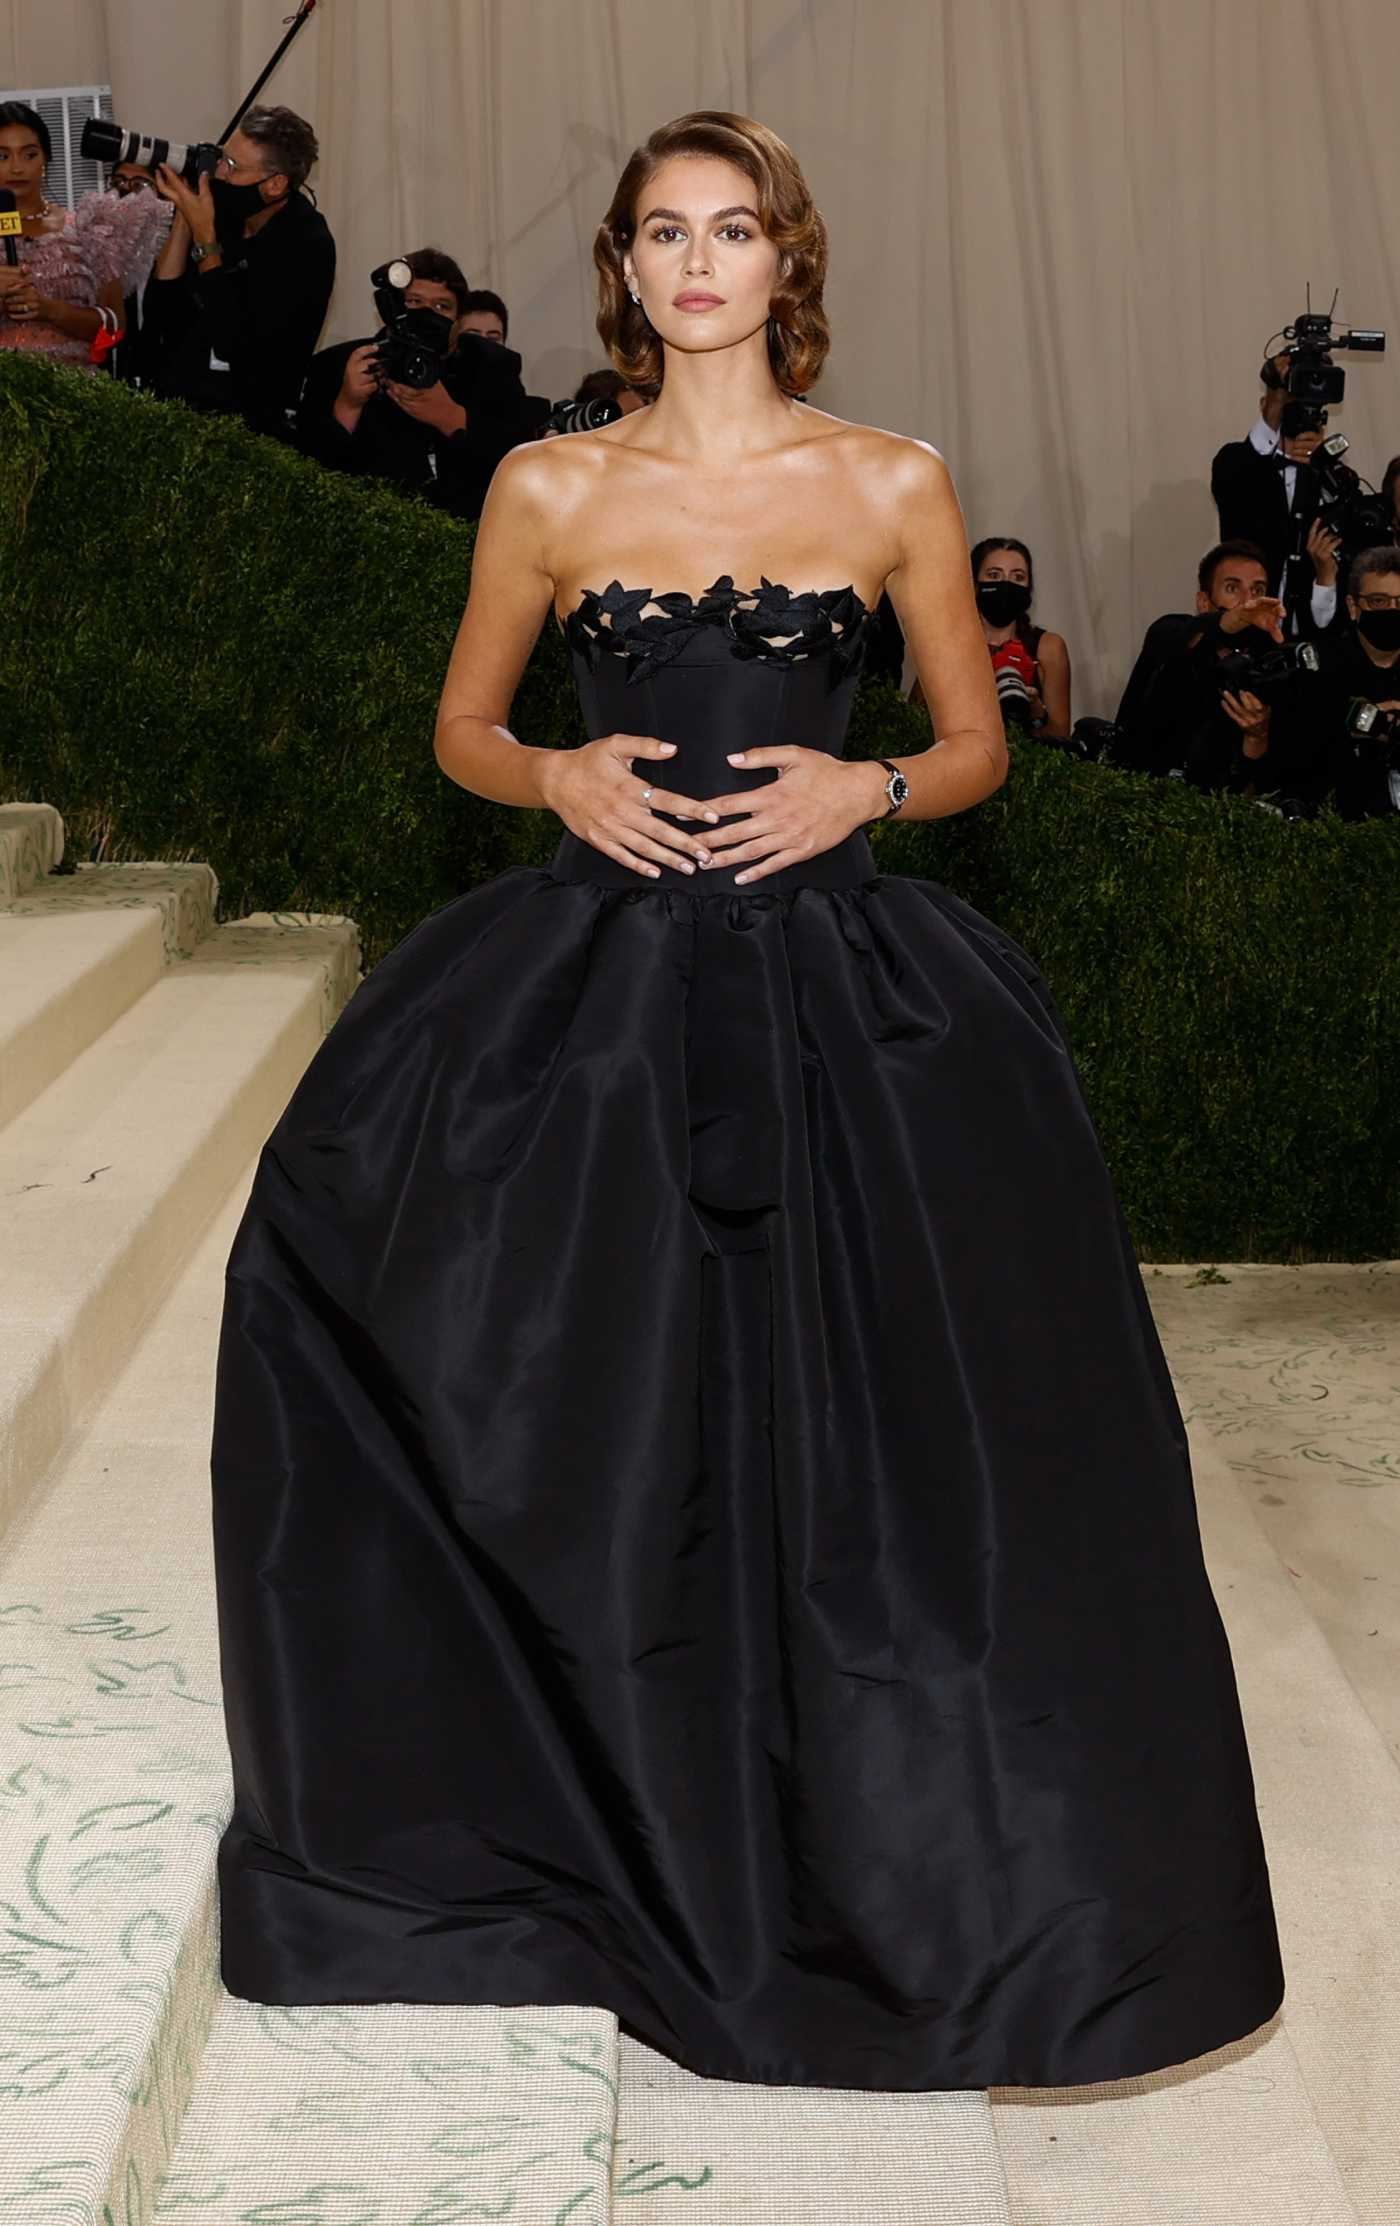 Kaia Gerber Attends 2021 Met Gala In America: A Lexicon of Fashion at Metropolitan Museum of Art in New York City 09/13/2021